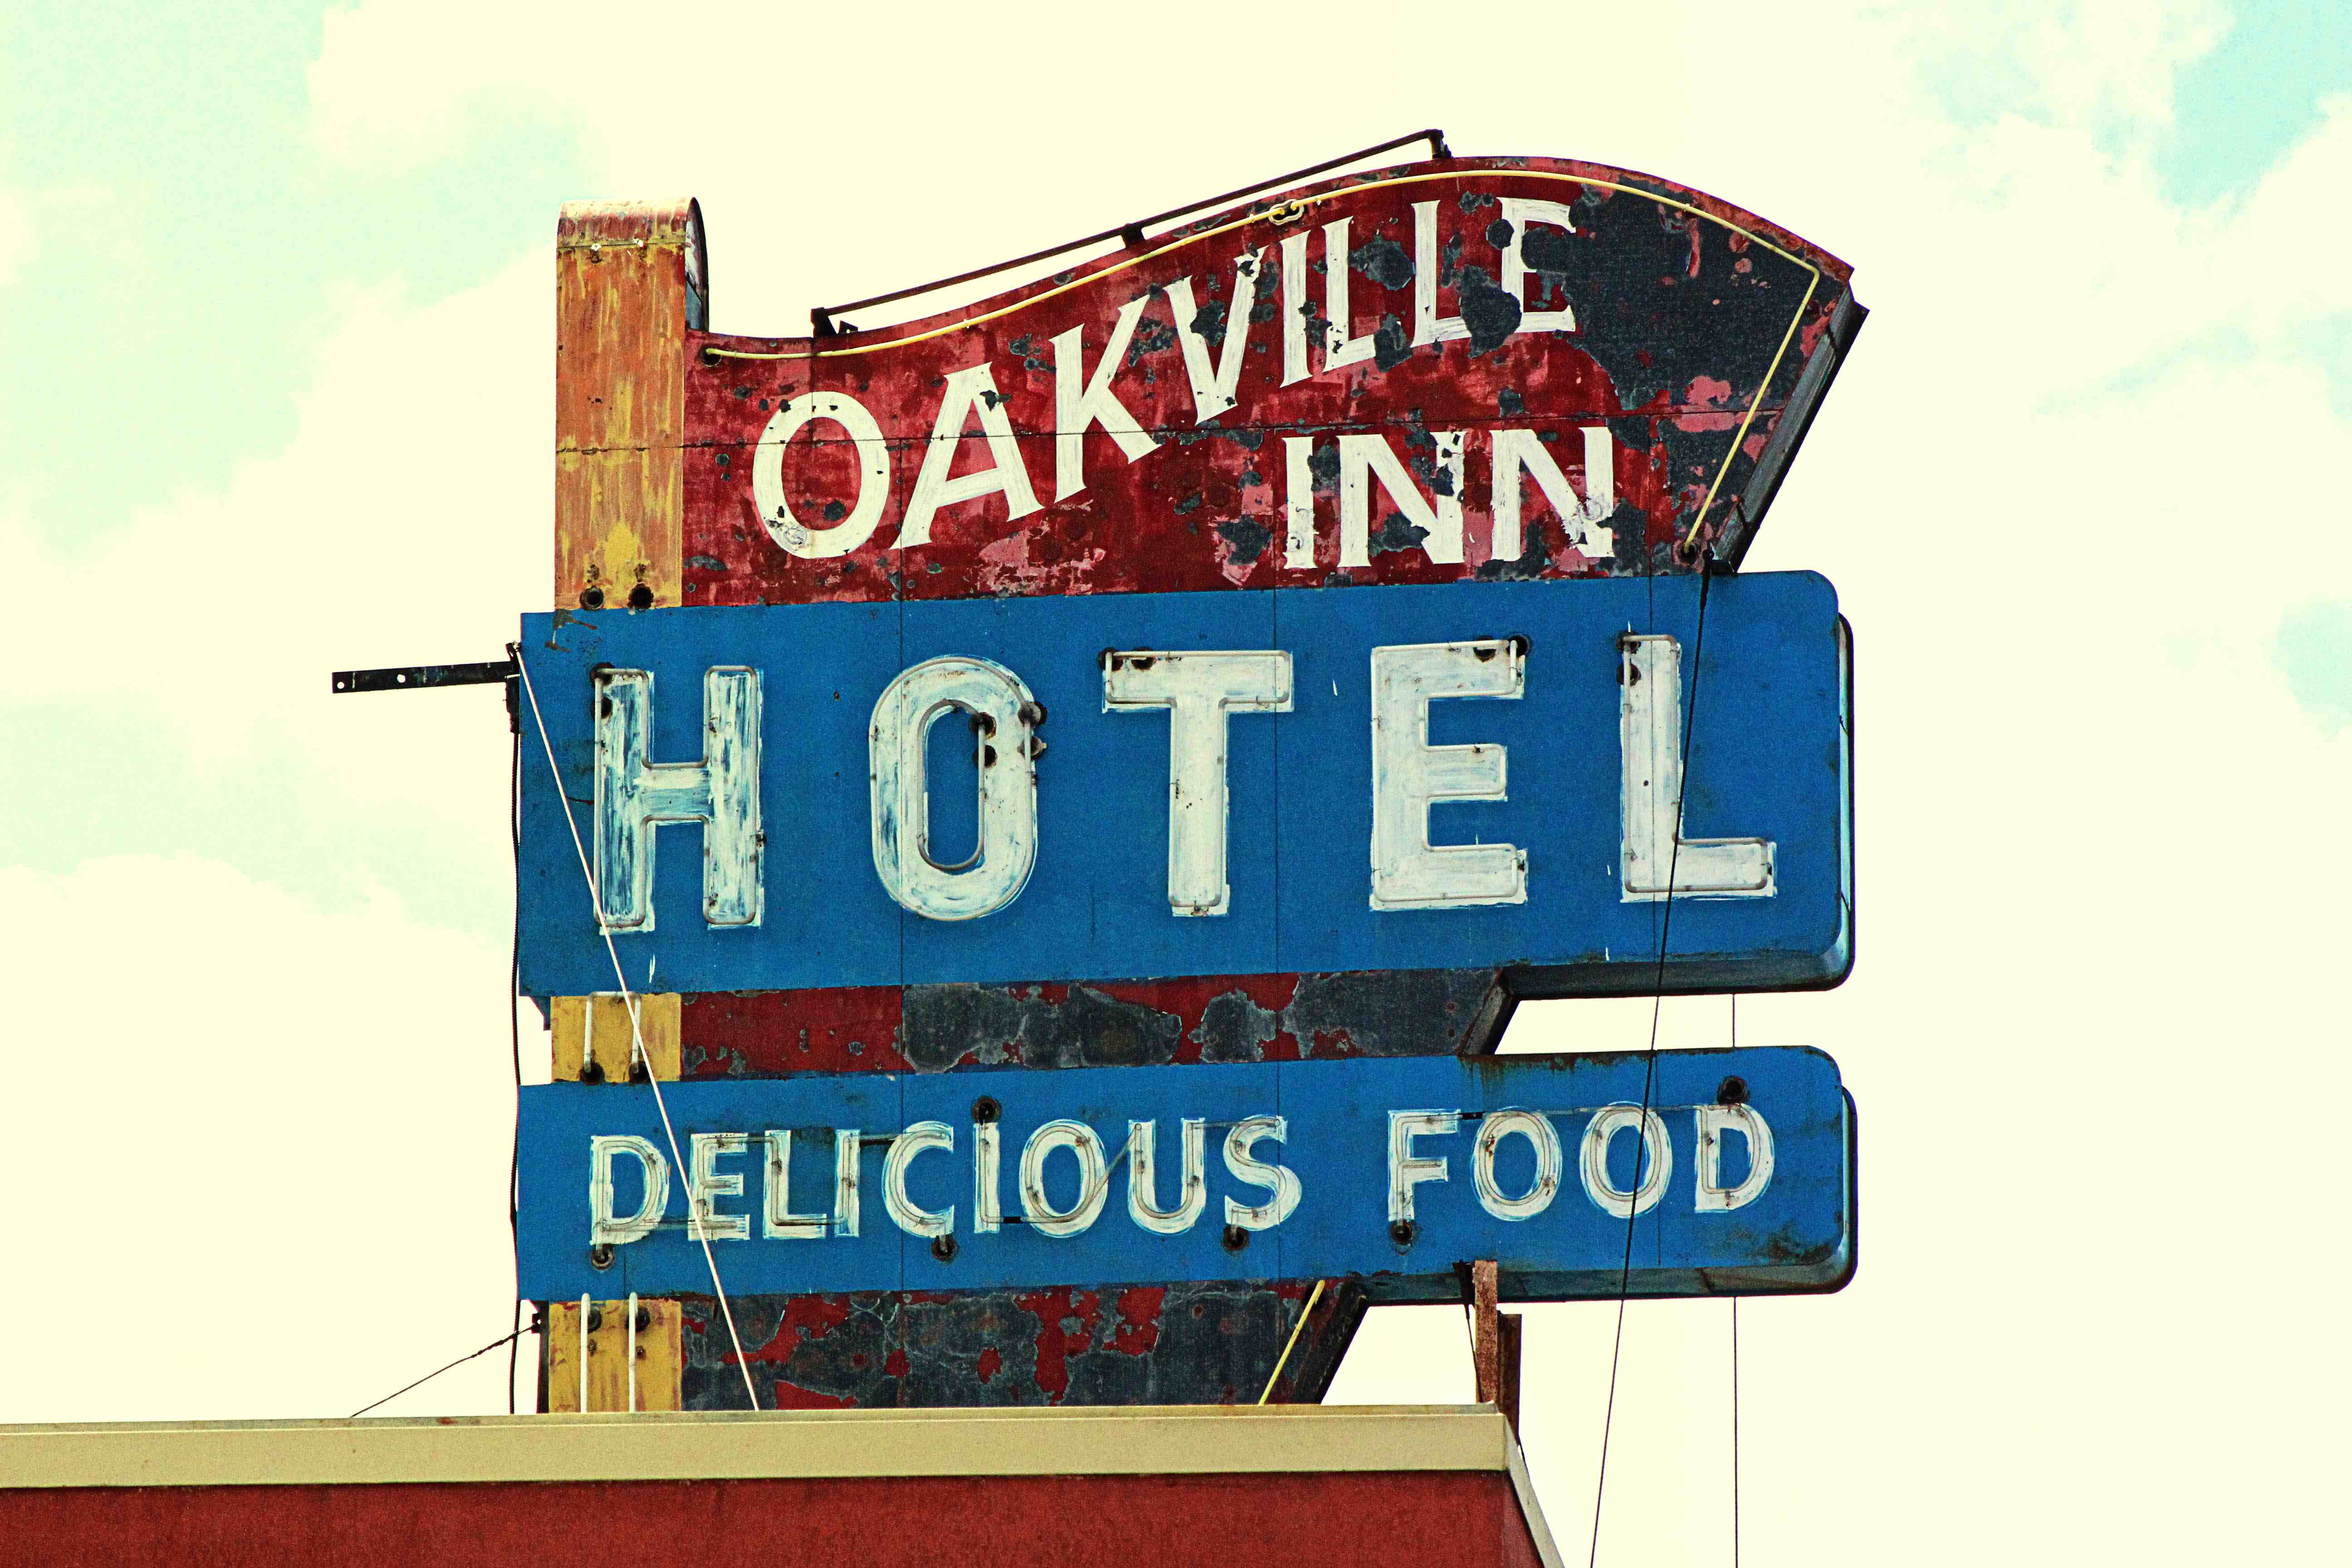 Fileoakville Inn Hotel Signg  Wikimedia Commons. World Wall Mural. Hidden Meaning Logo. Cheese Murals. Chest Tattoo Lettering. Fz16 Decals. Tanu Stickers. Communion Signs Of Stroke. Kidney Failure Signs